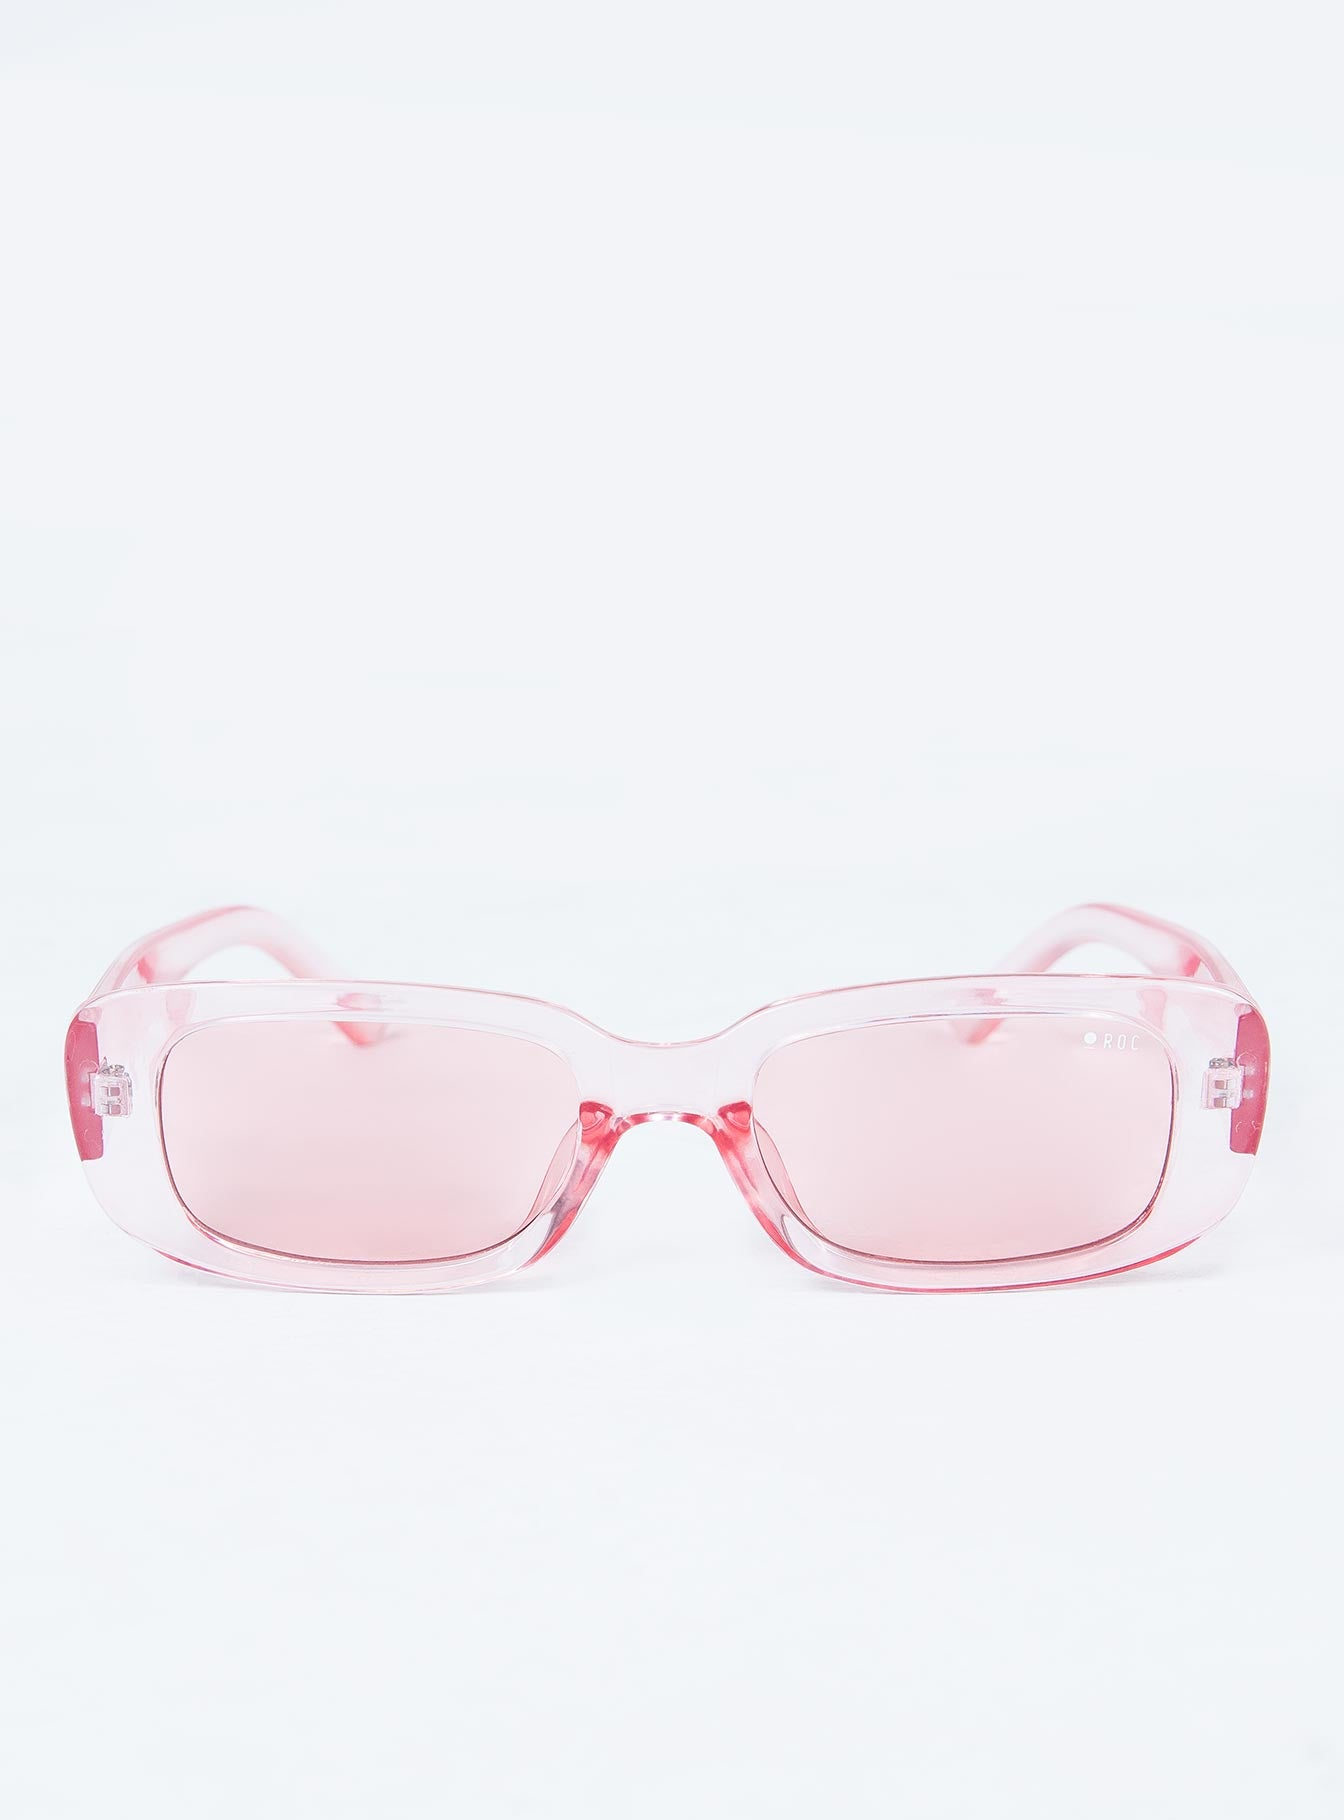 Creeper Sunglasses Clear Pink